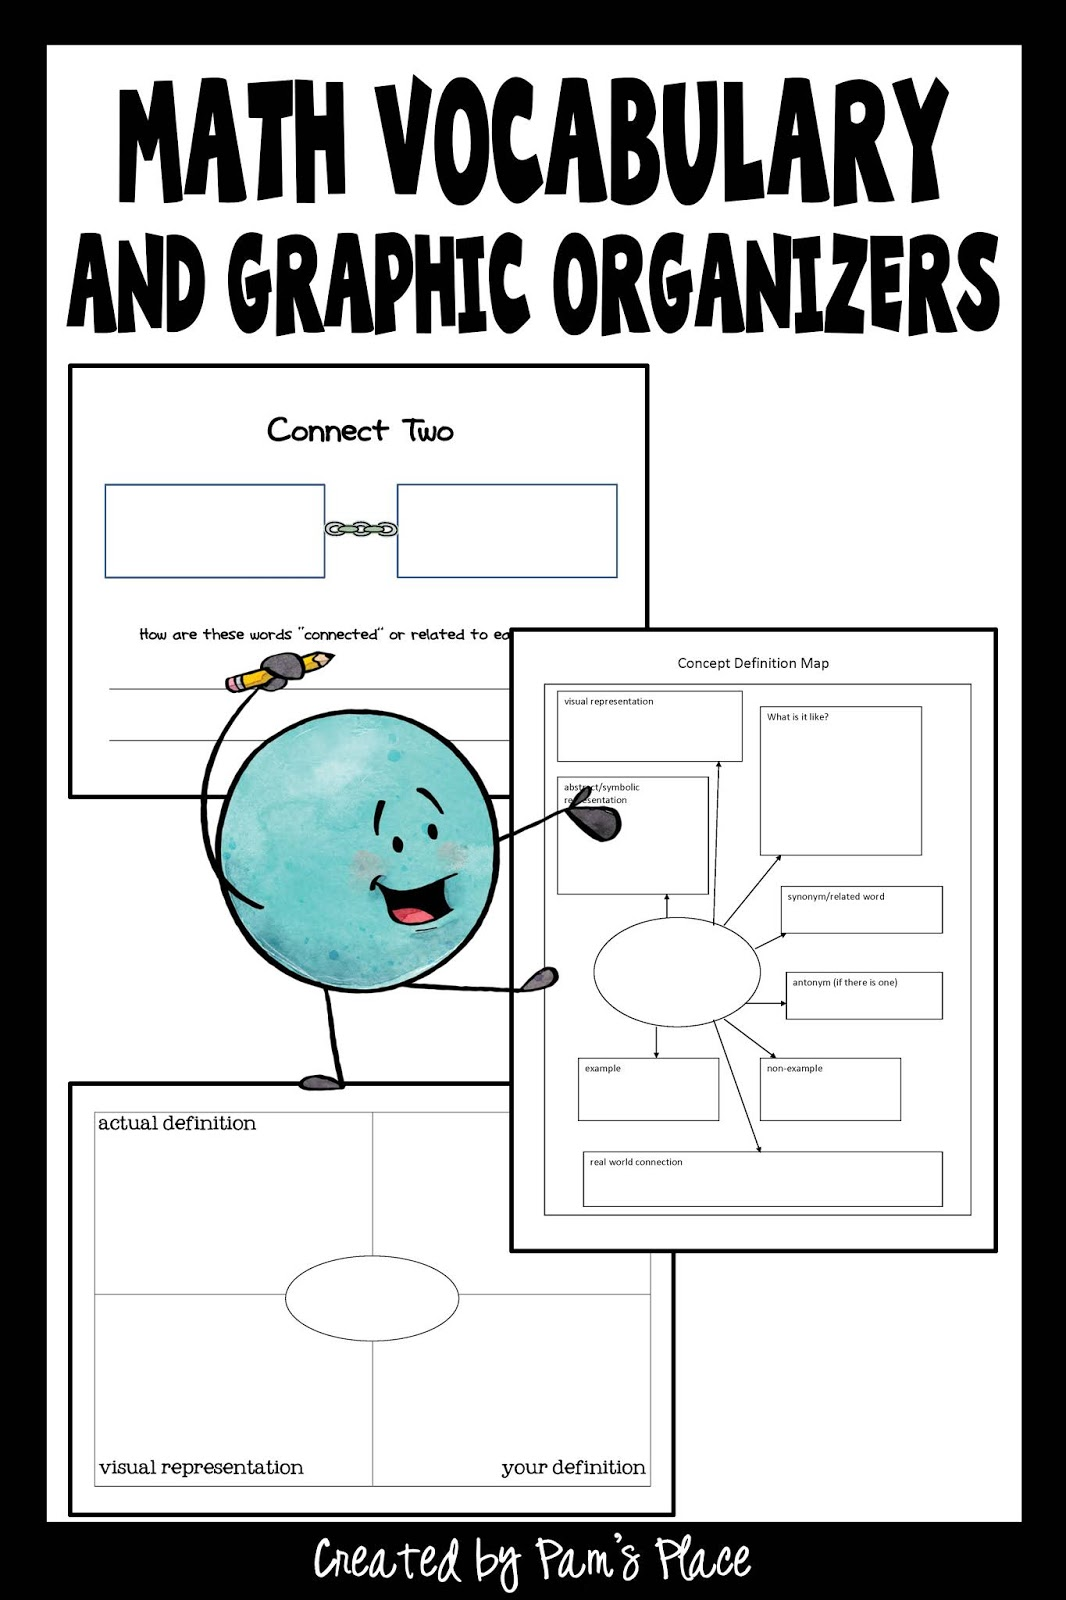 Graphic Organizers For Math Vocabulary